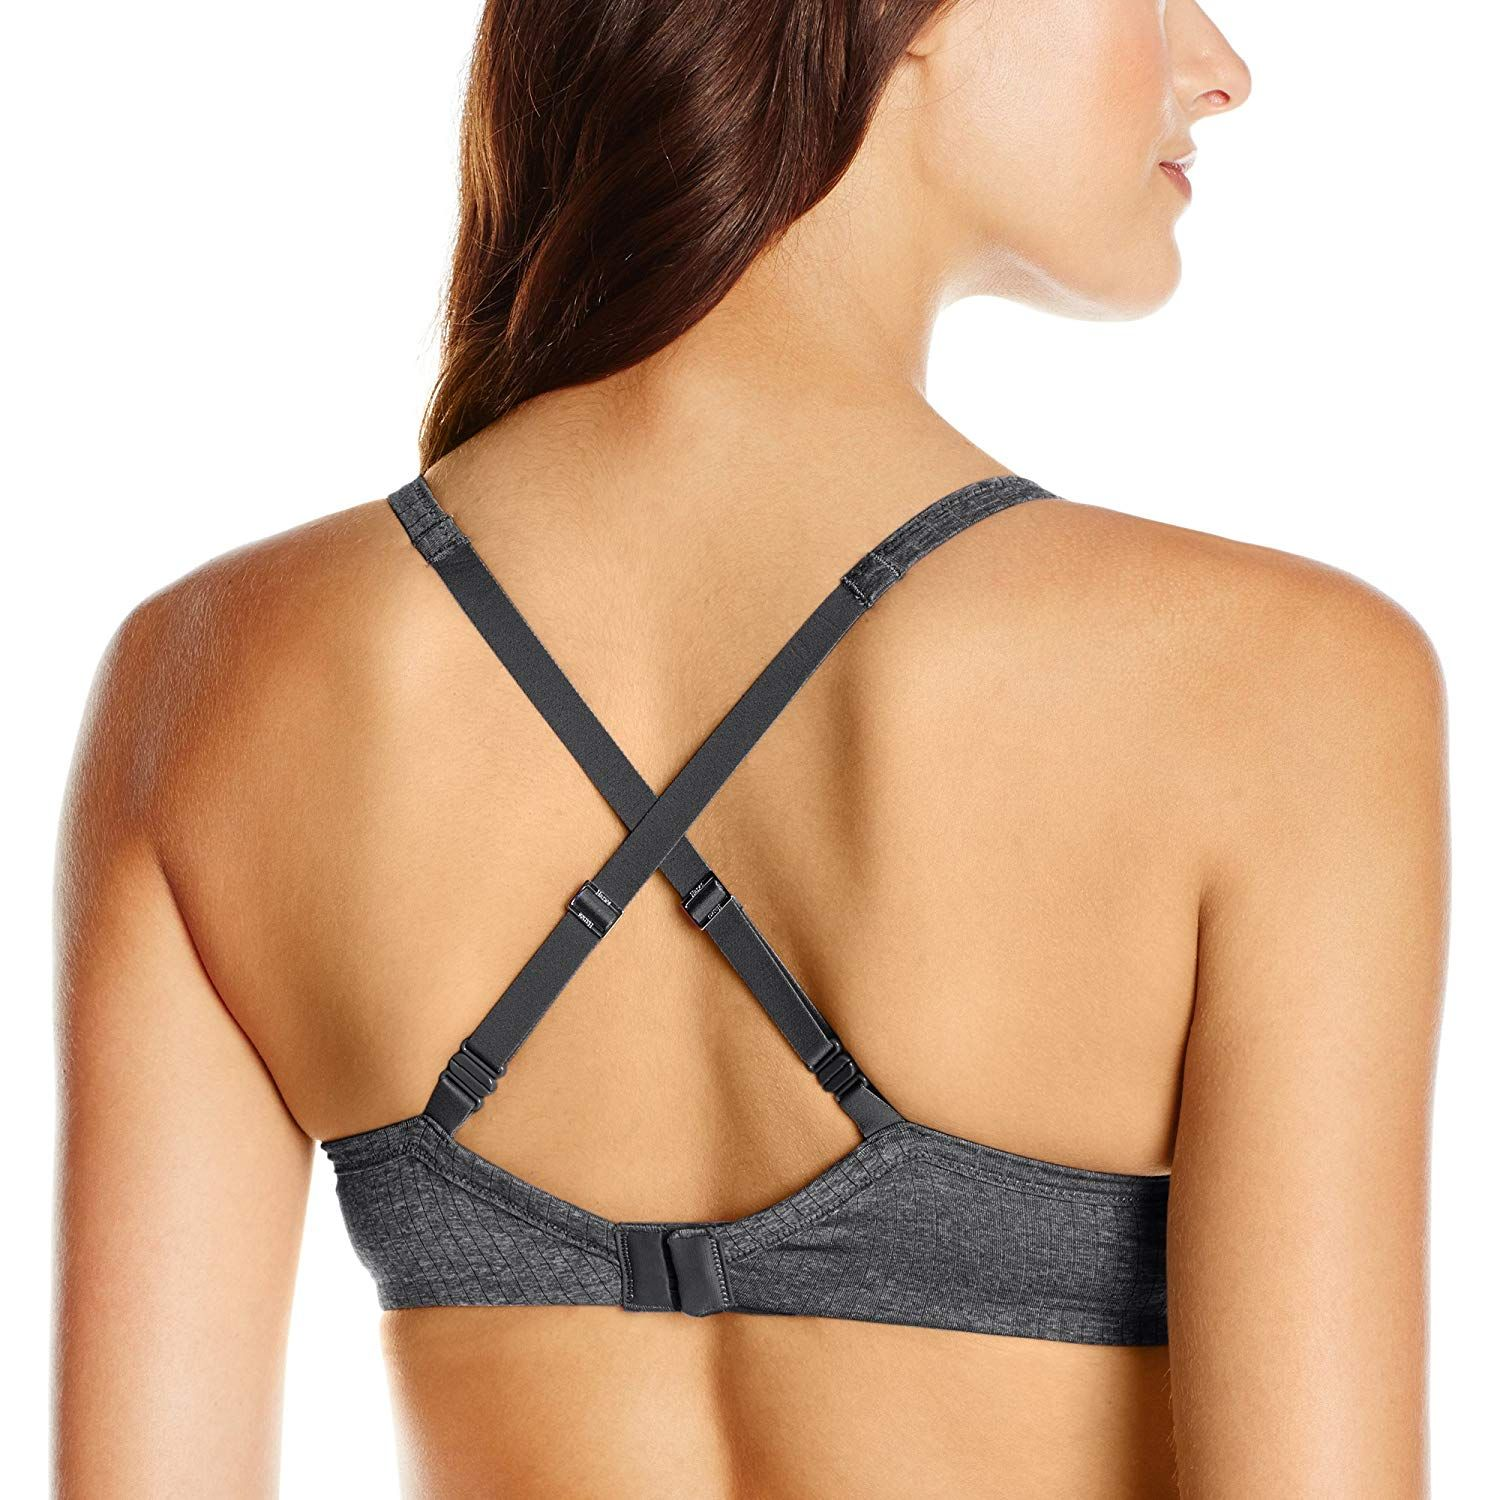 Hanes Womens Ultimate Comfy Support Underwire Bra